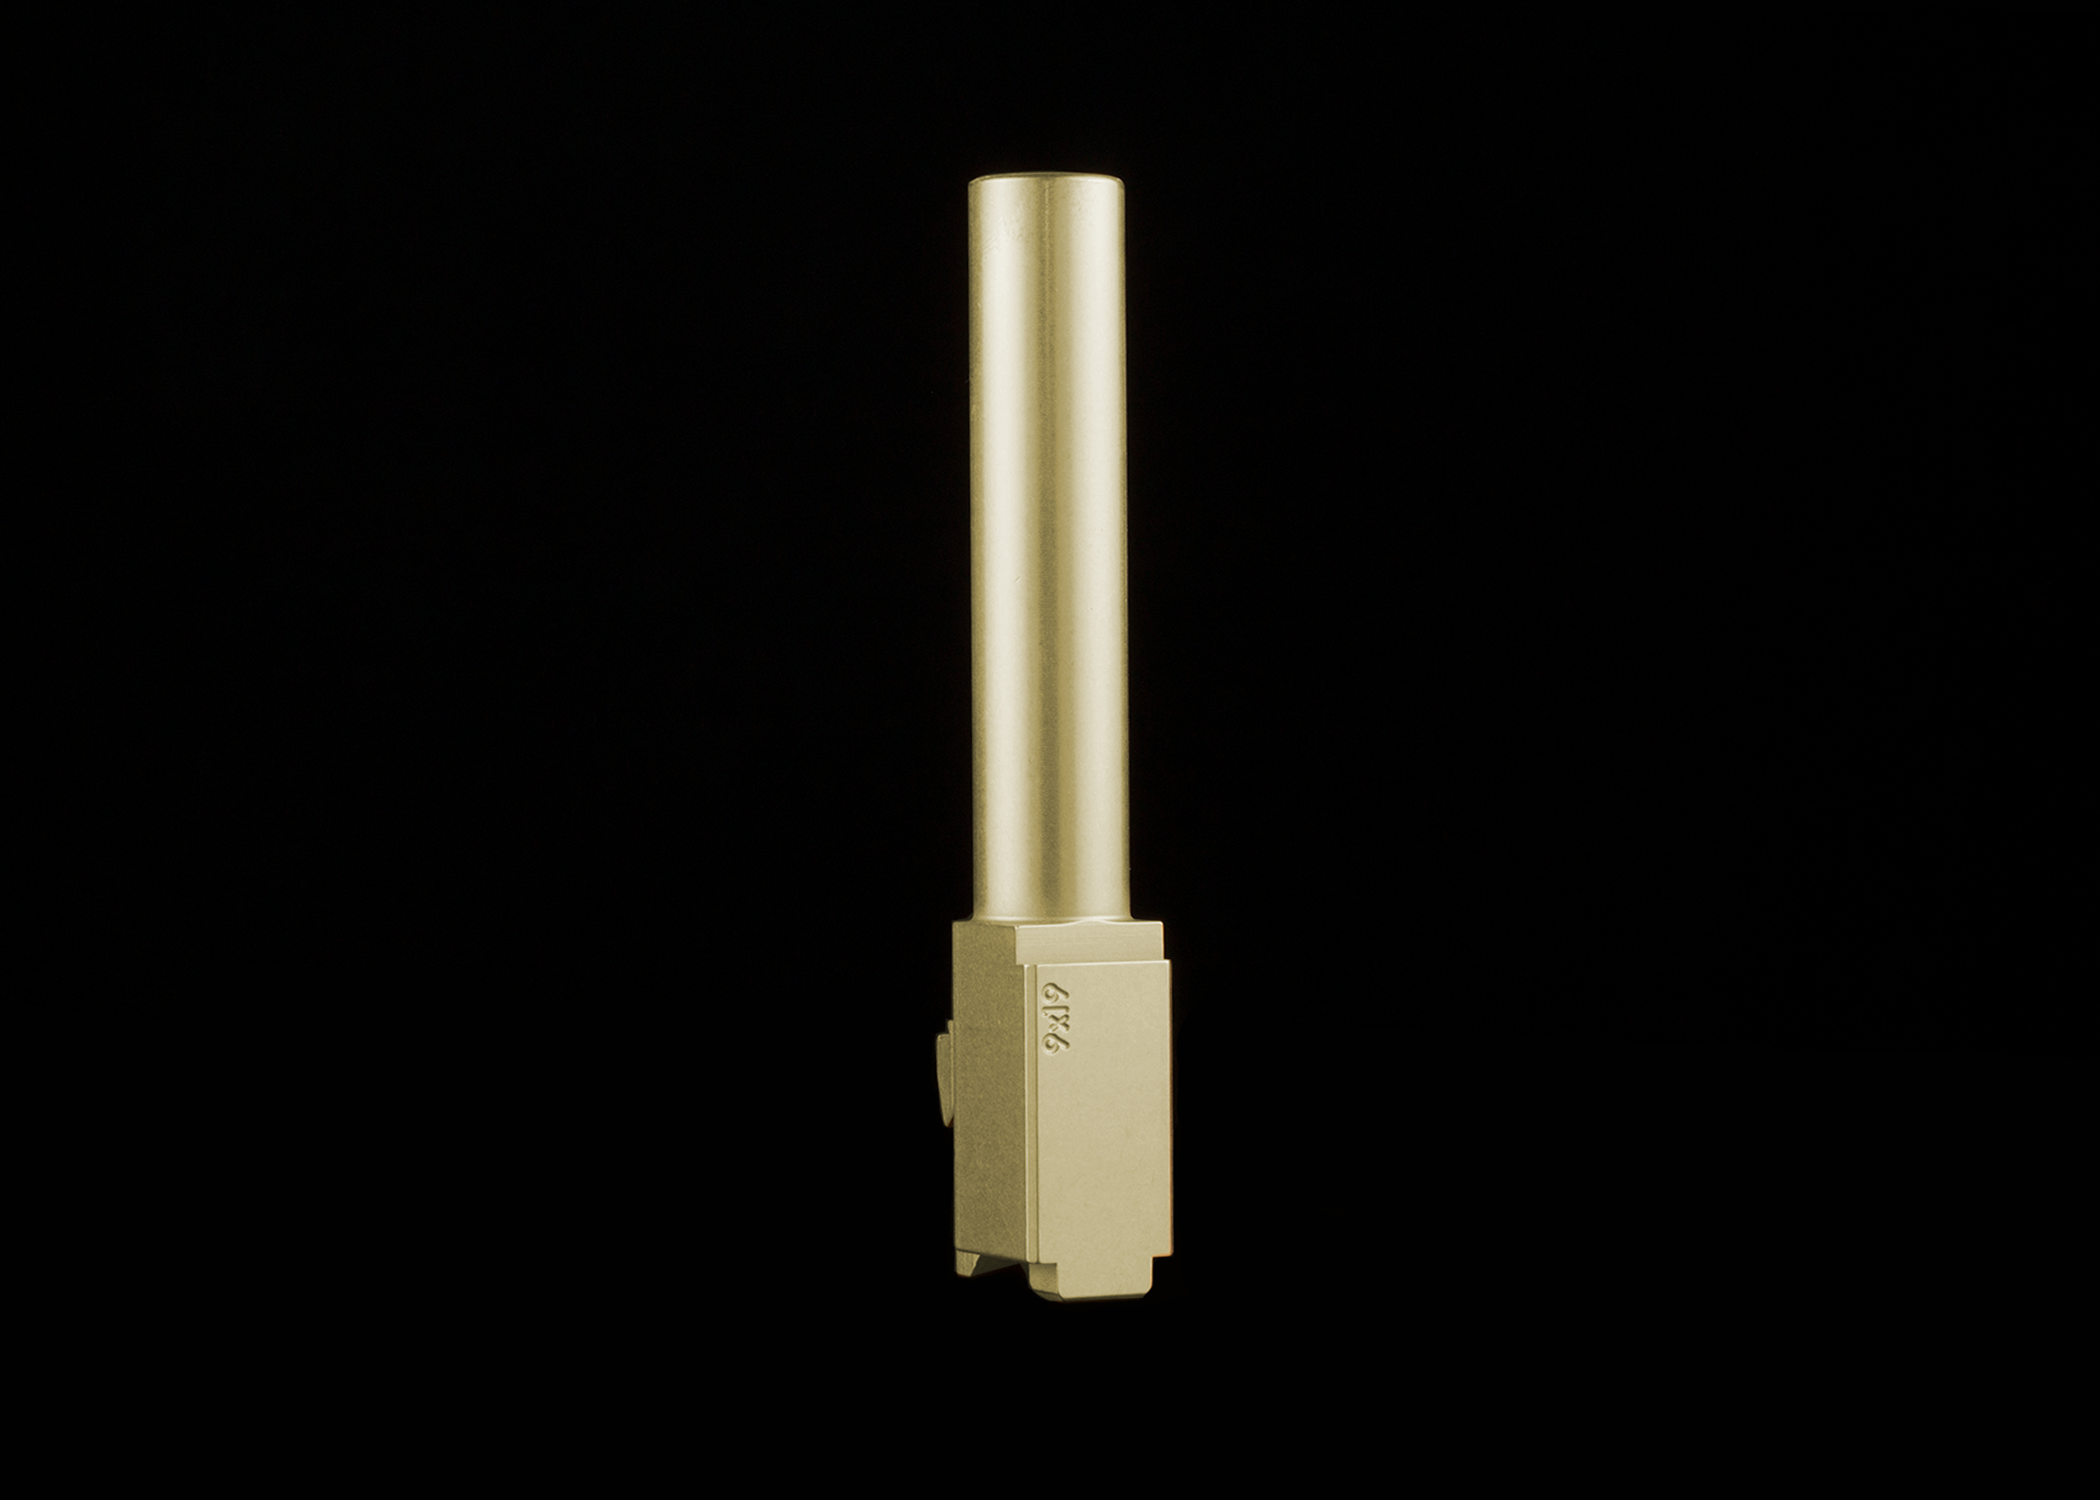 """Color:  Champagne (light gold)   Thickness Range:  1 to 5 microns (~0.00004 to 0.0002"""")   Hardness:  2700 to 2900 Hv (Vickers hardness)   Maximum Operating Temperature:  600º C (1100º F)   Lubricity:  0.5 coefficient of friction   Wear Resistance:  Excellent"""